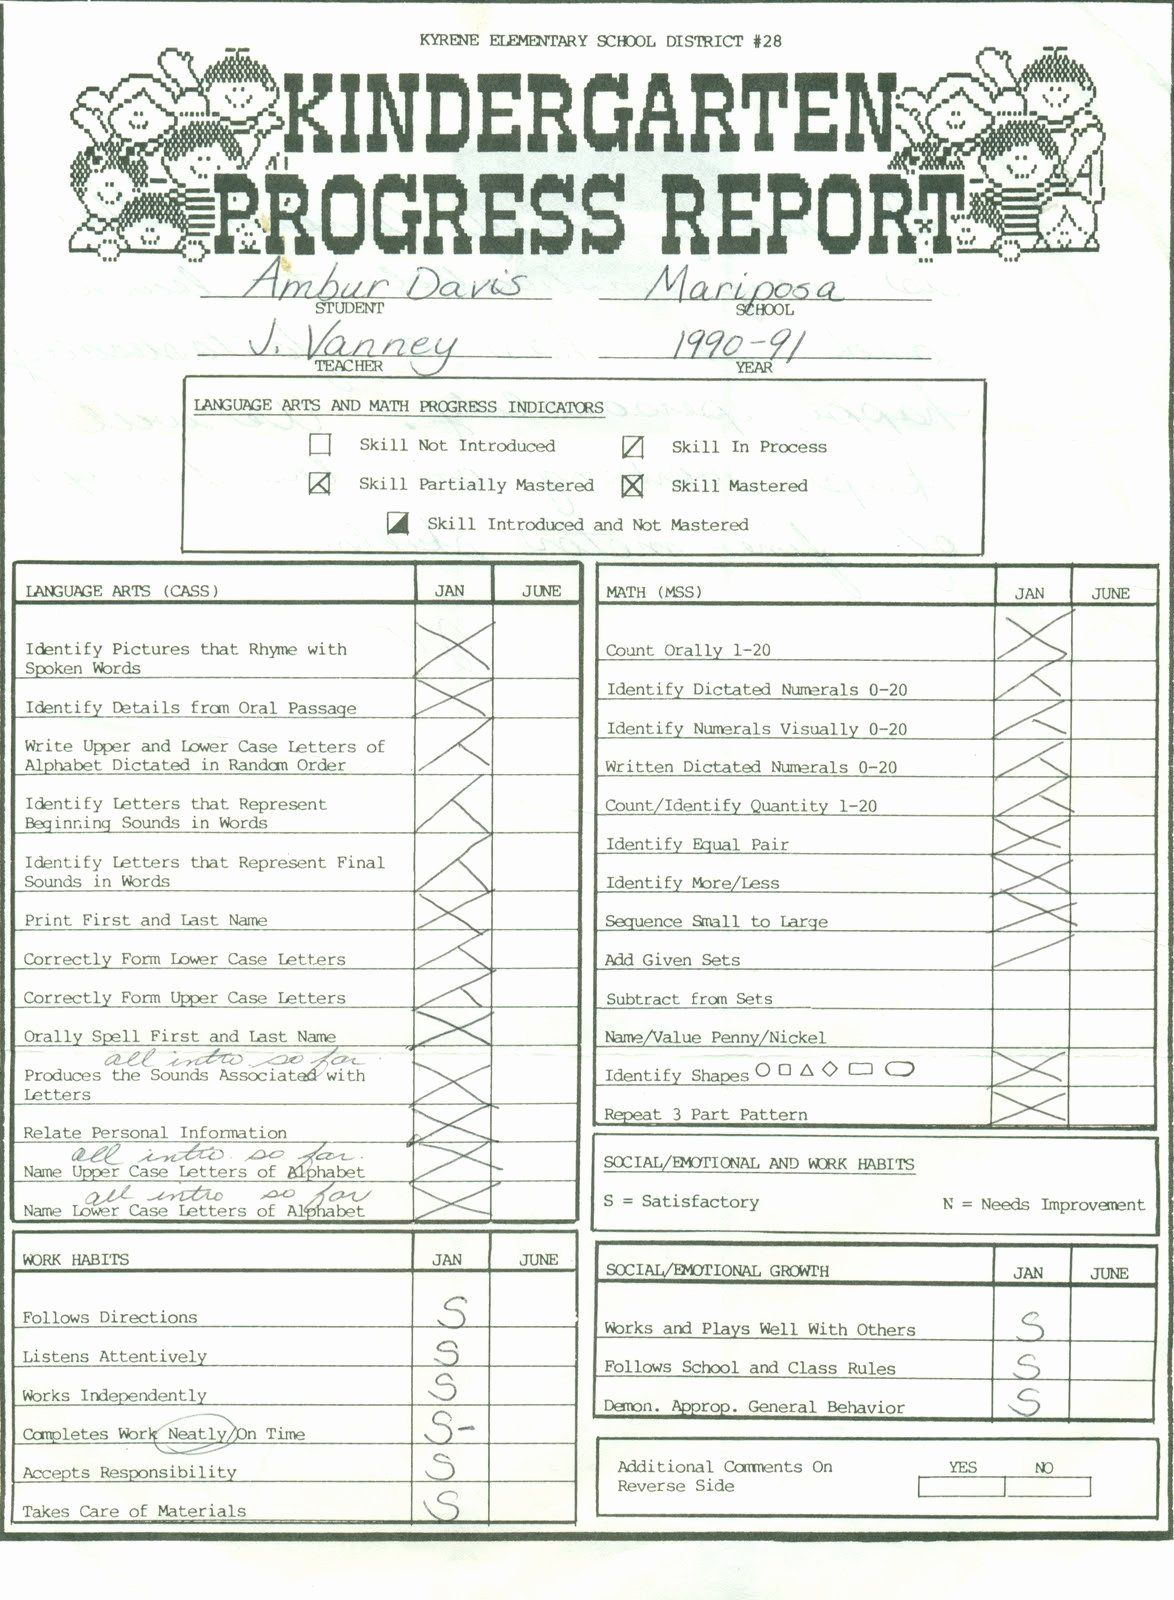 Kindergarten Report Card Template Lovely A Gift From Heaven 1990 Skills Report Card and Progress